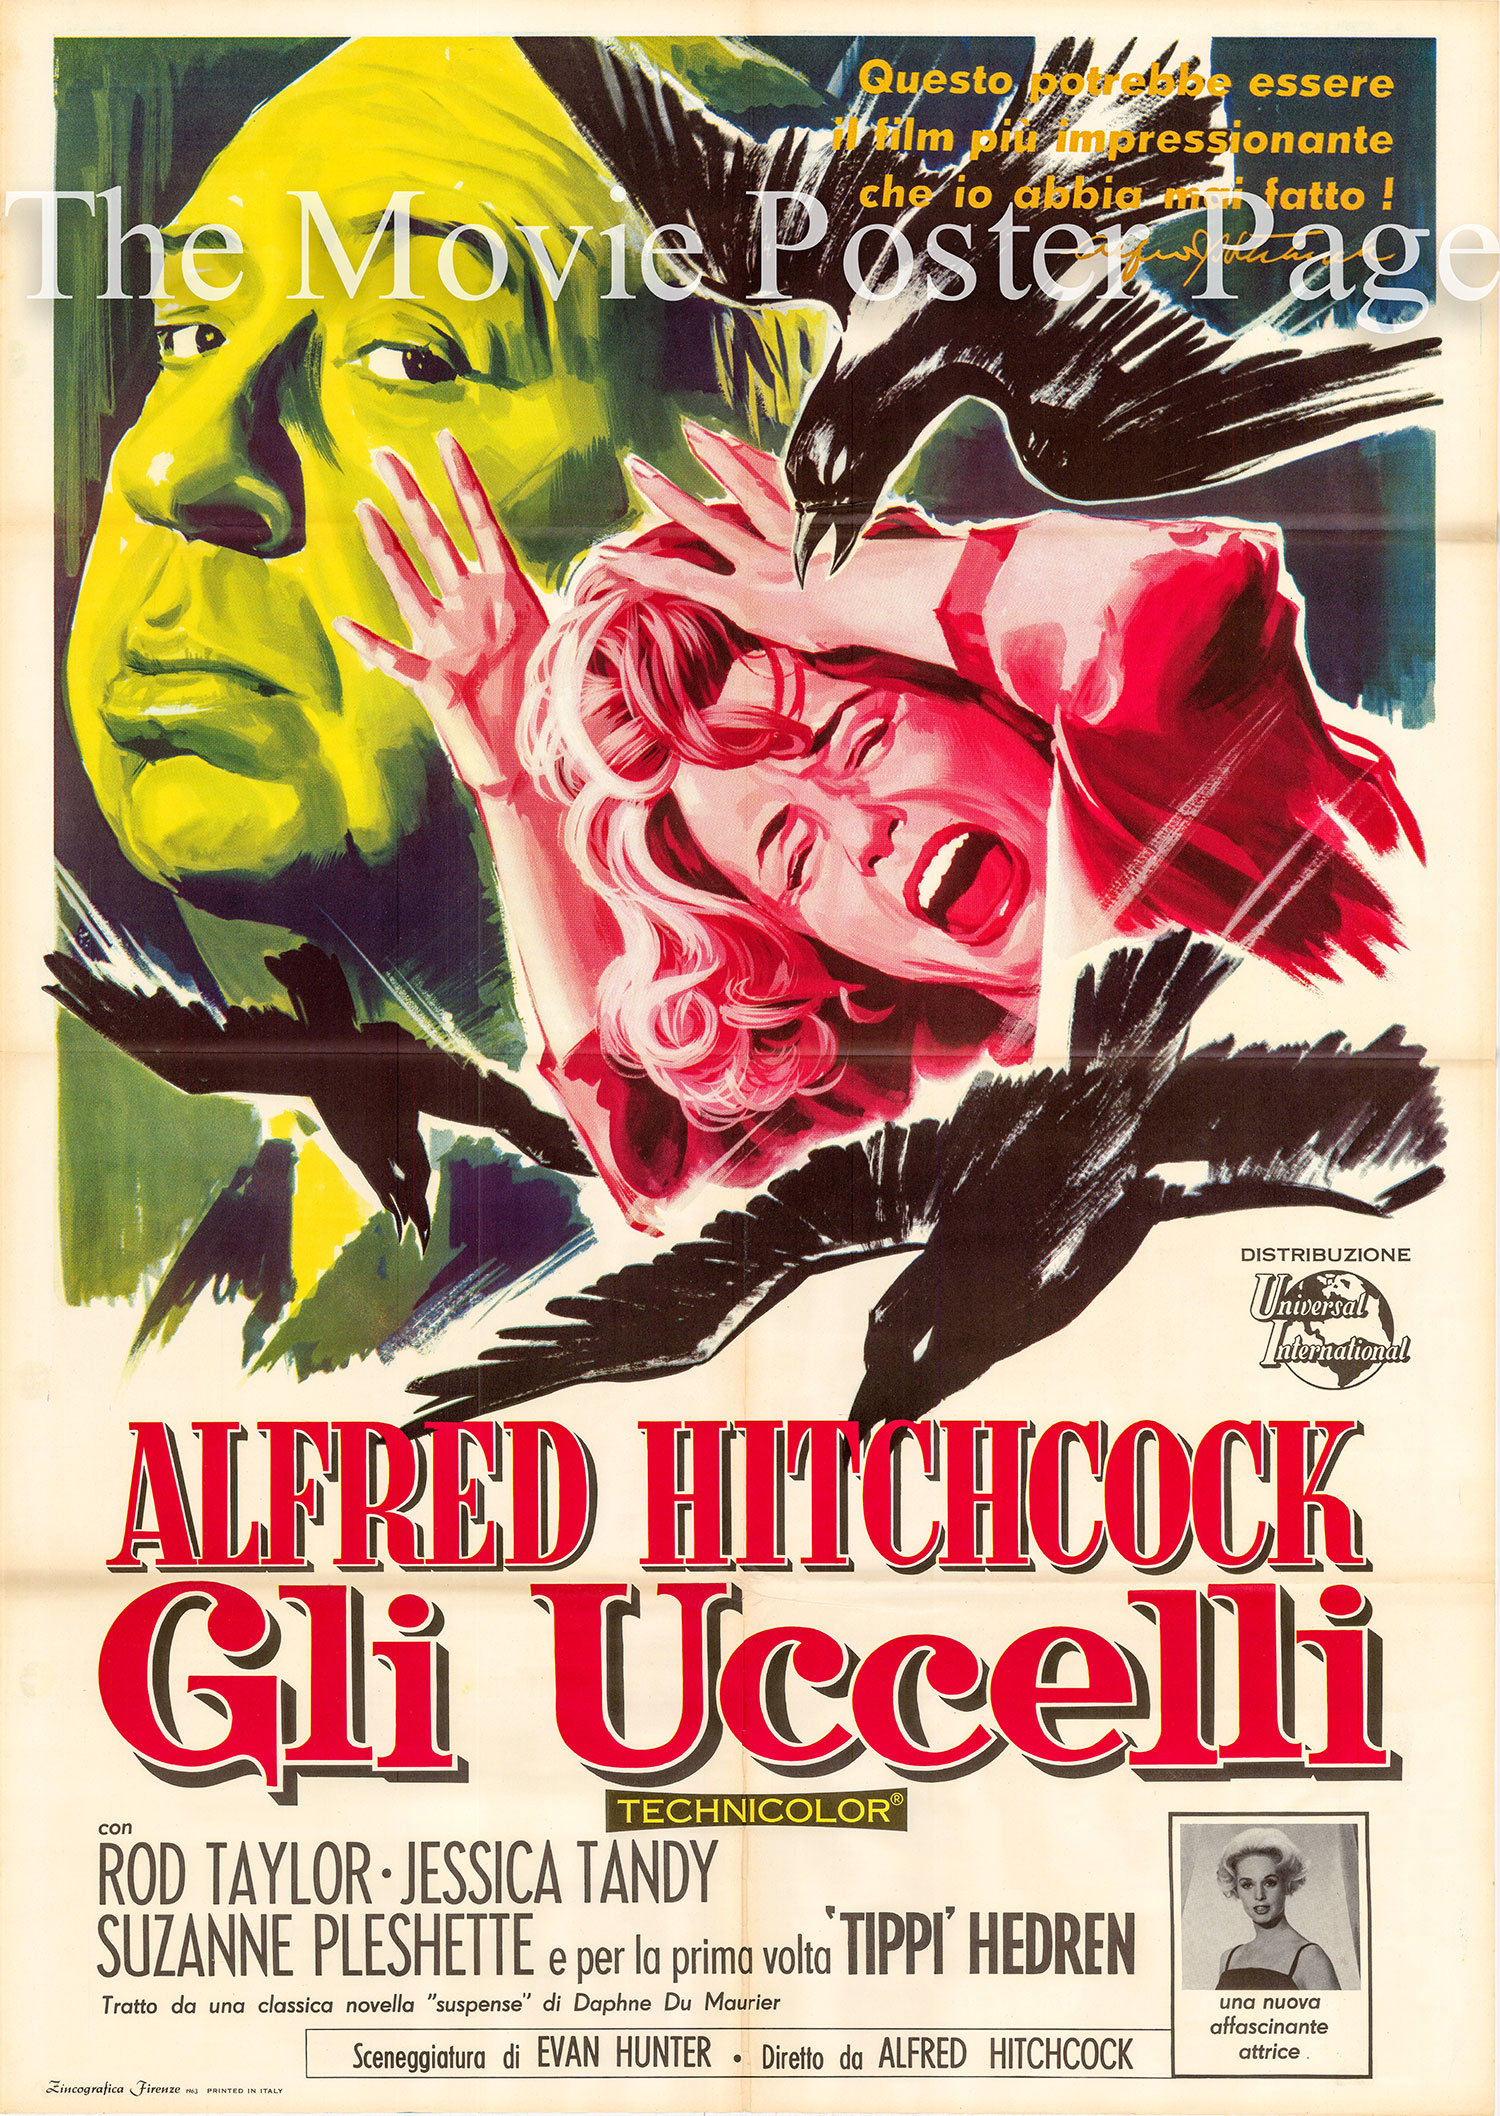 Pictured is an Italian two-sheet poster made to promote the 1963 Alfred Hitchcock film The Birds starring Tippi Hedren.